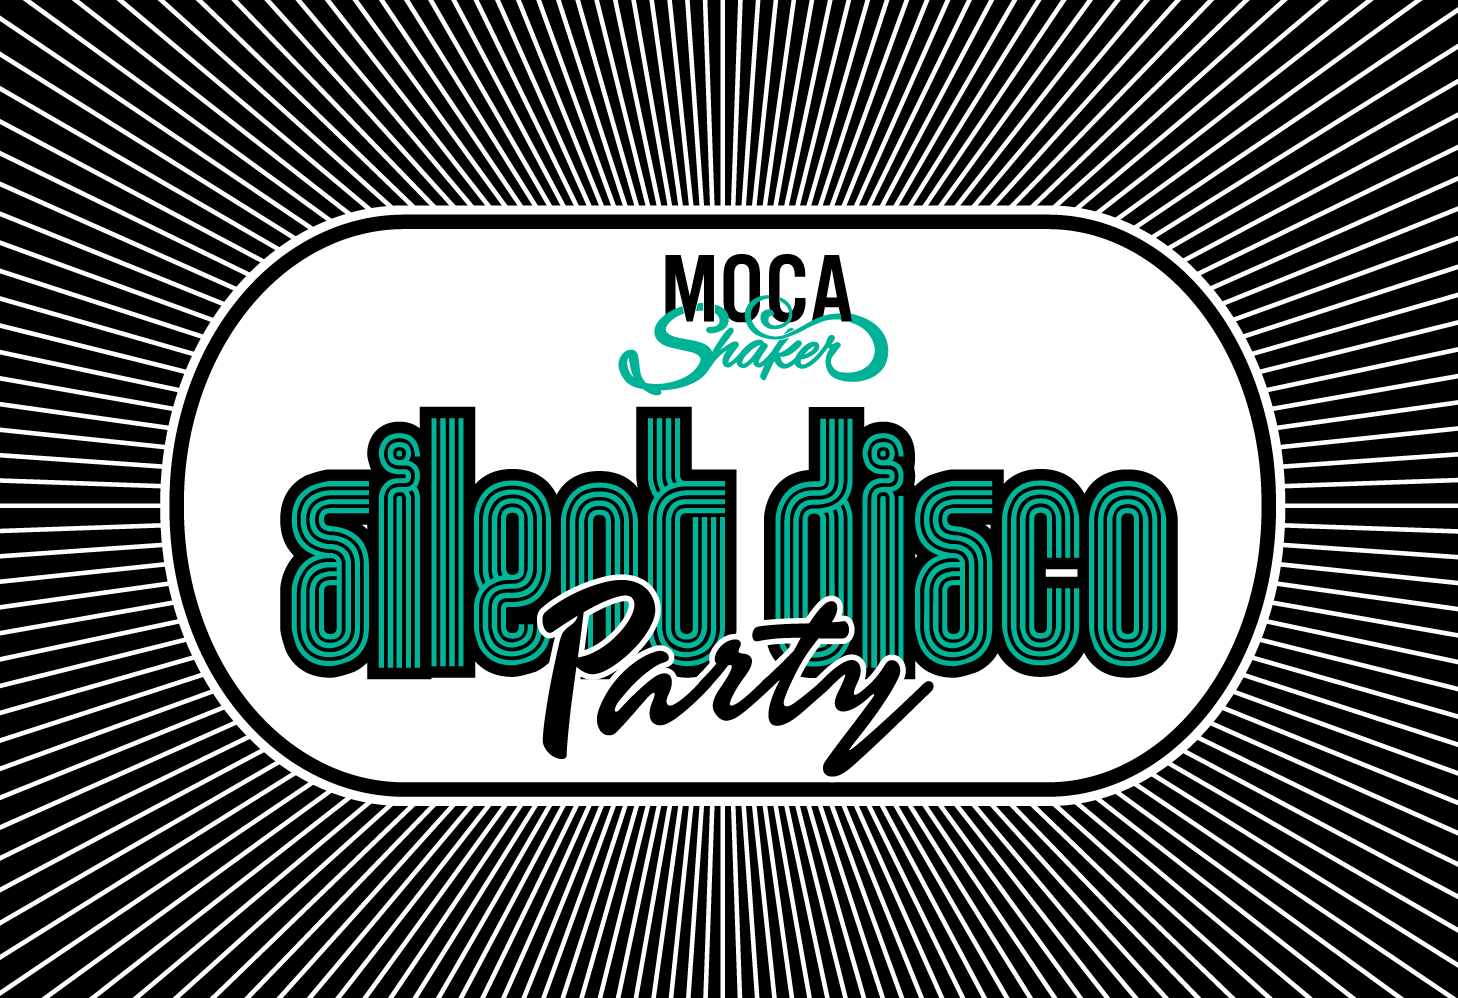 MOCA Shakers × Silent Disco Party